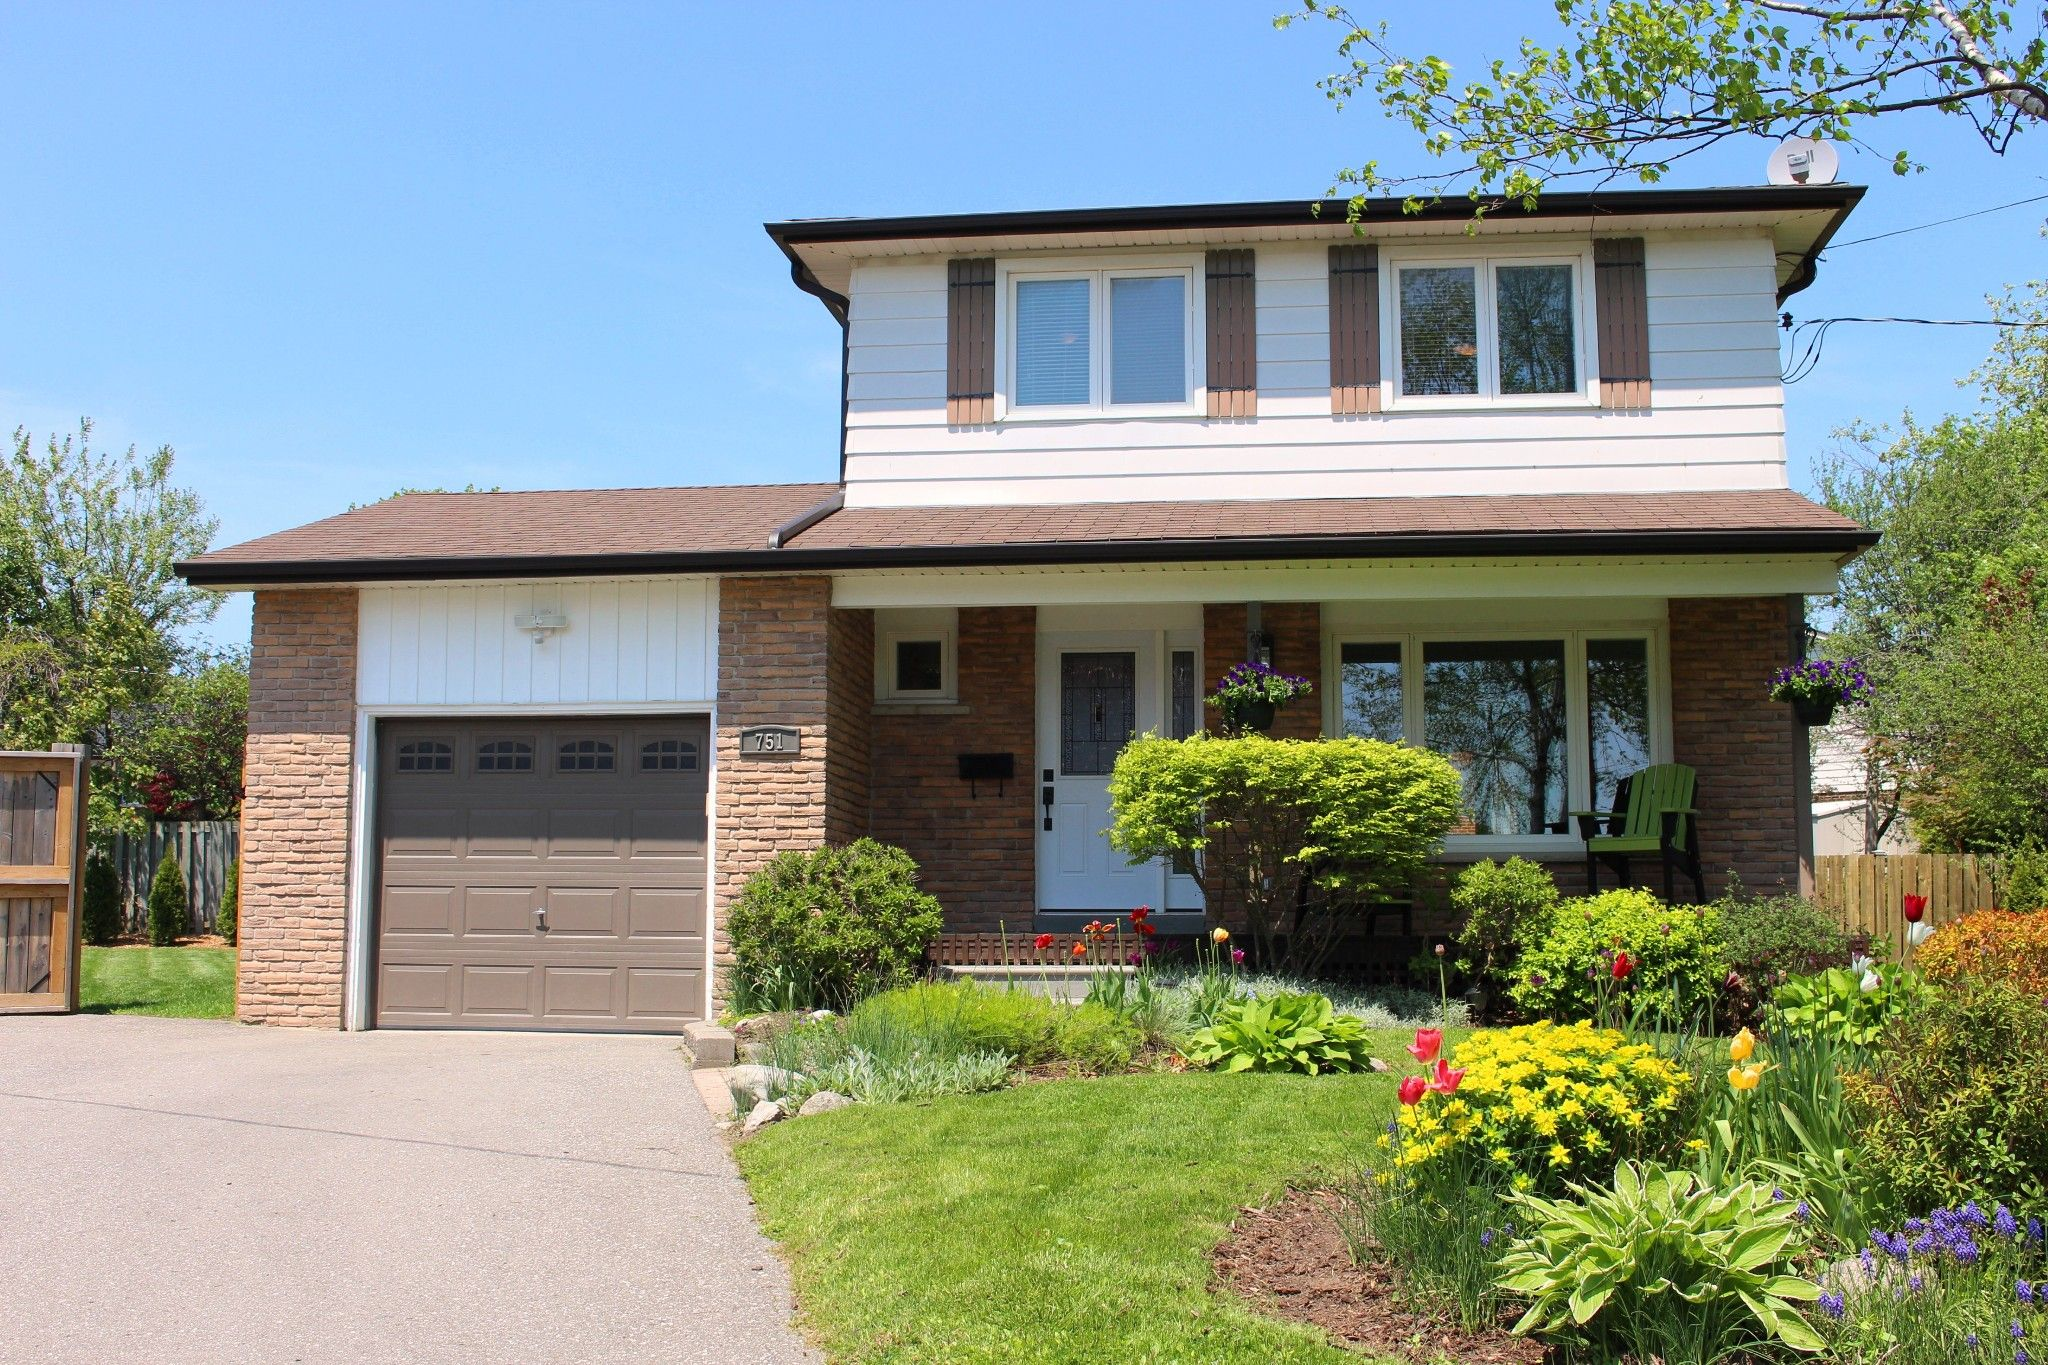 Main Photo: 751 Spragge Crescent in Cobourg: House for sale : MLS®# 1291056